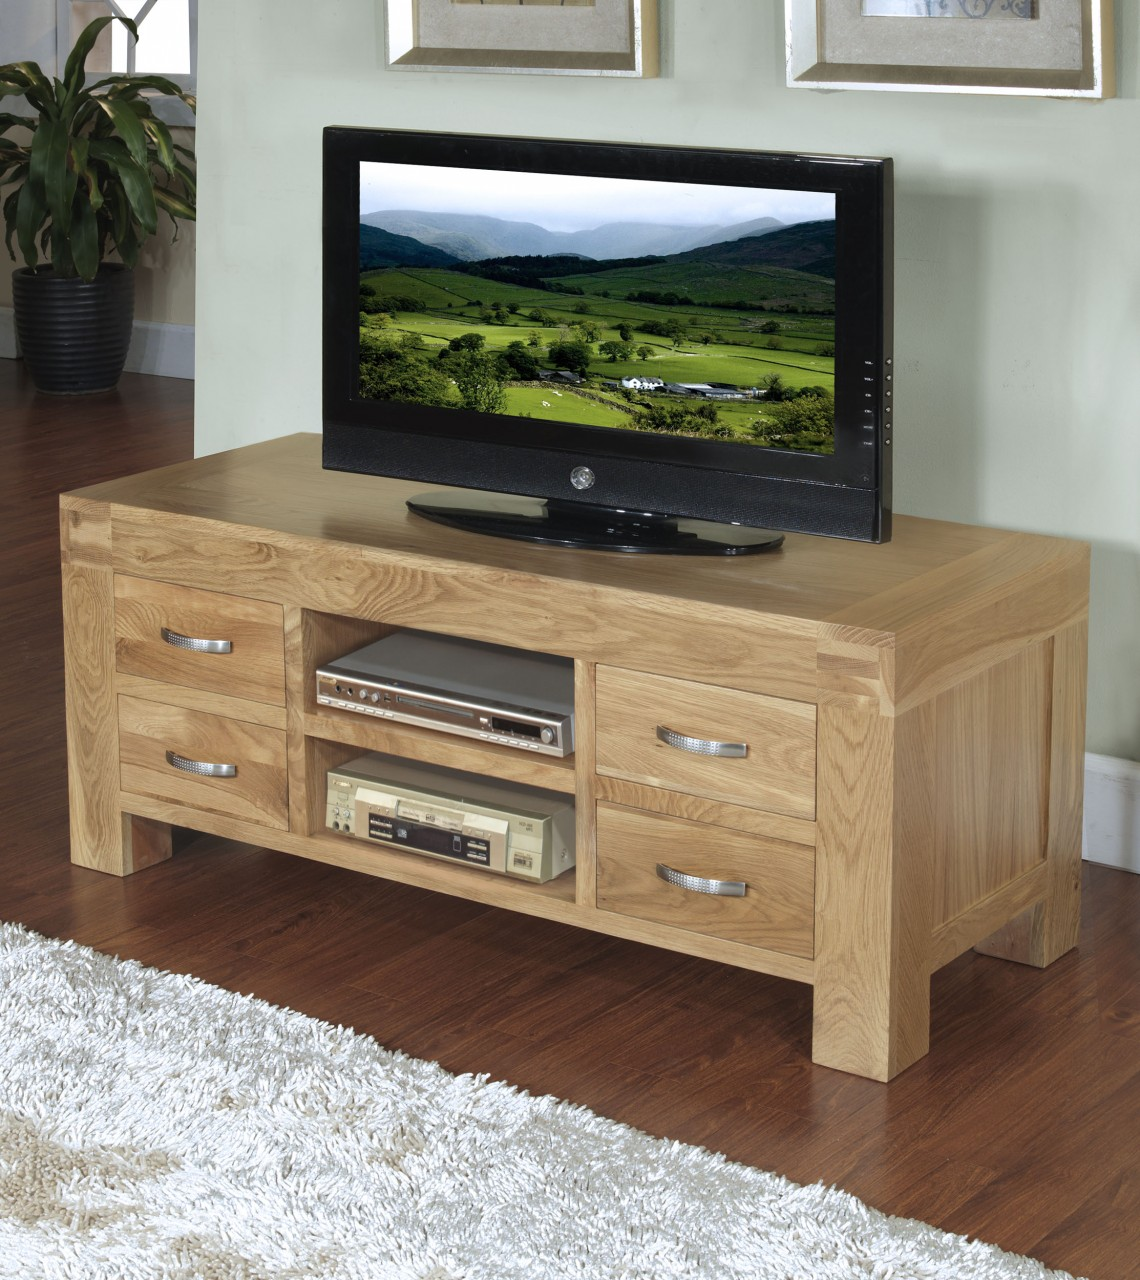 Langton Solid Contemporary Oak Furniture Widescreen Tv Cabinet Stand Unit Ebay